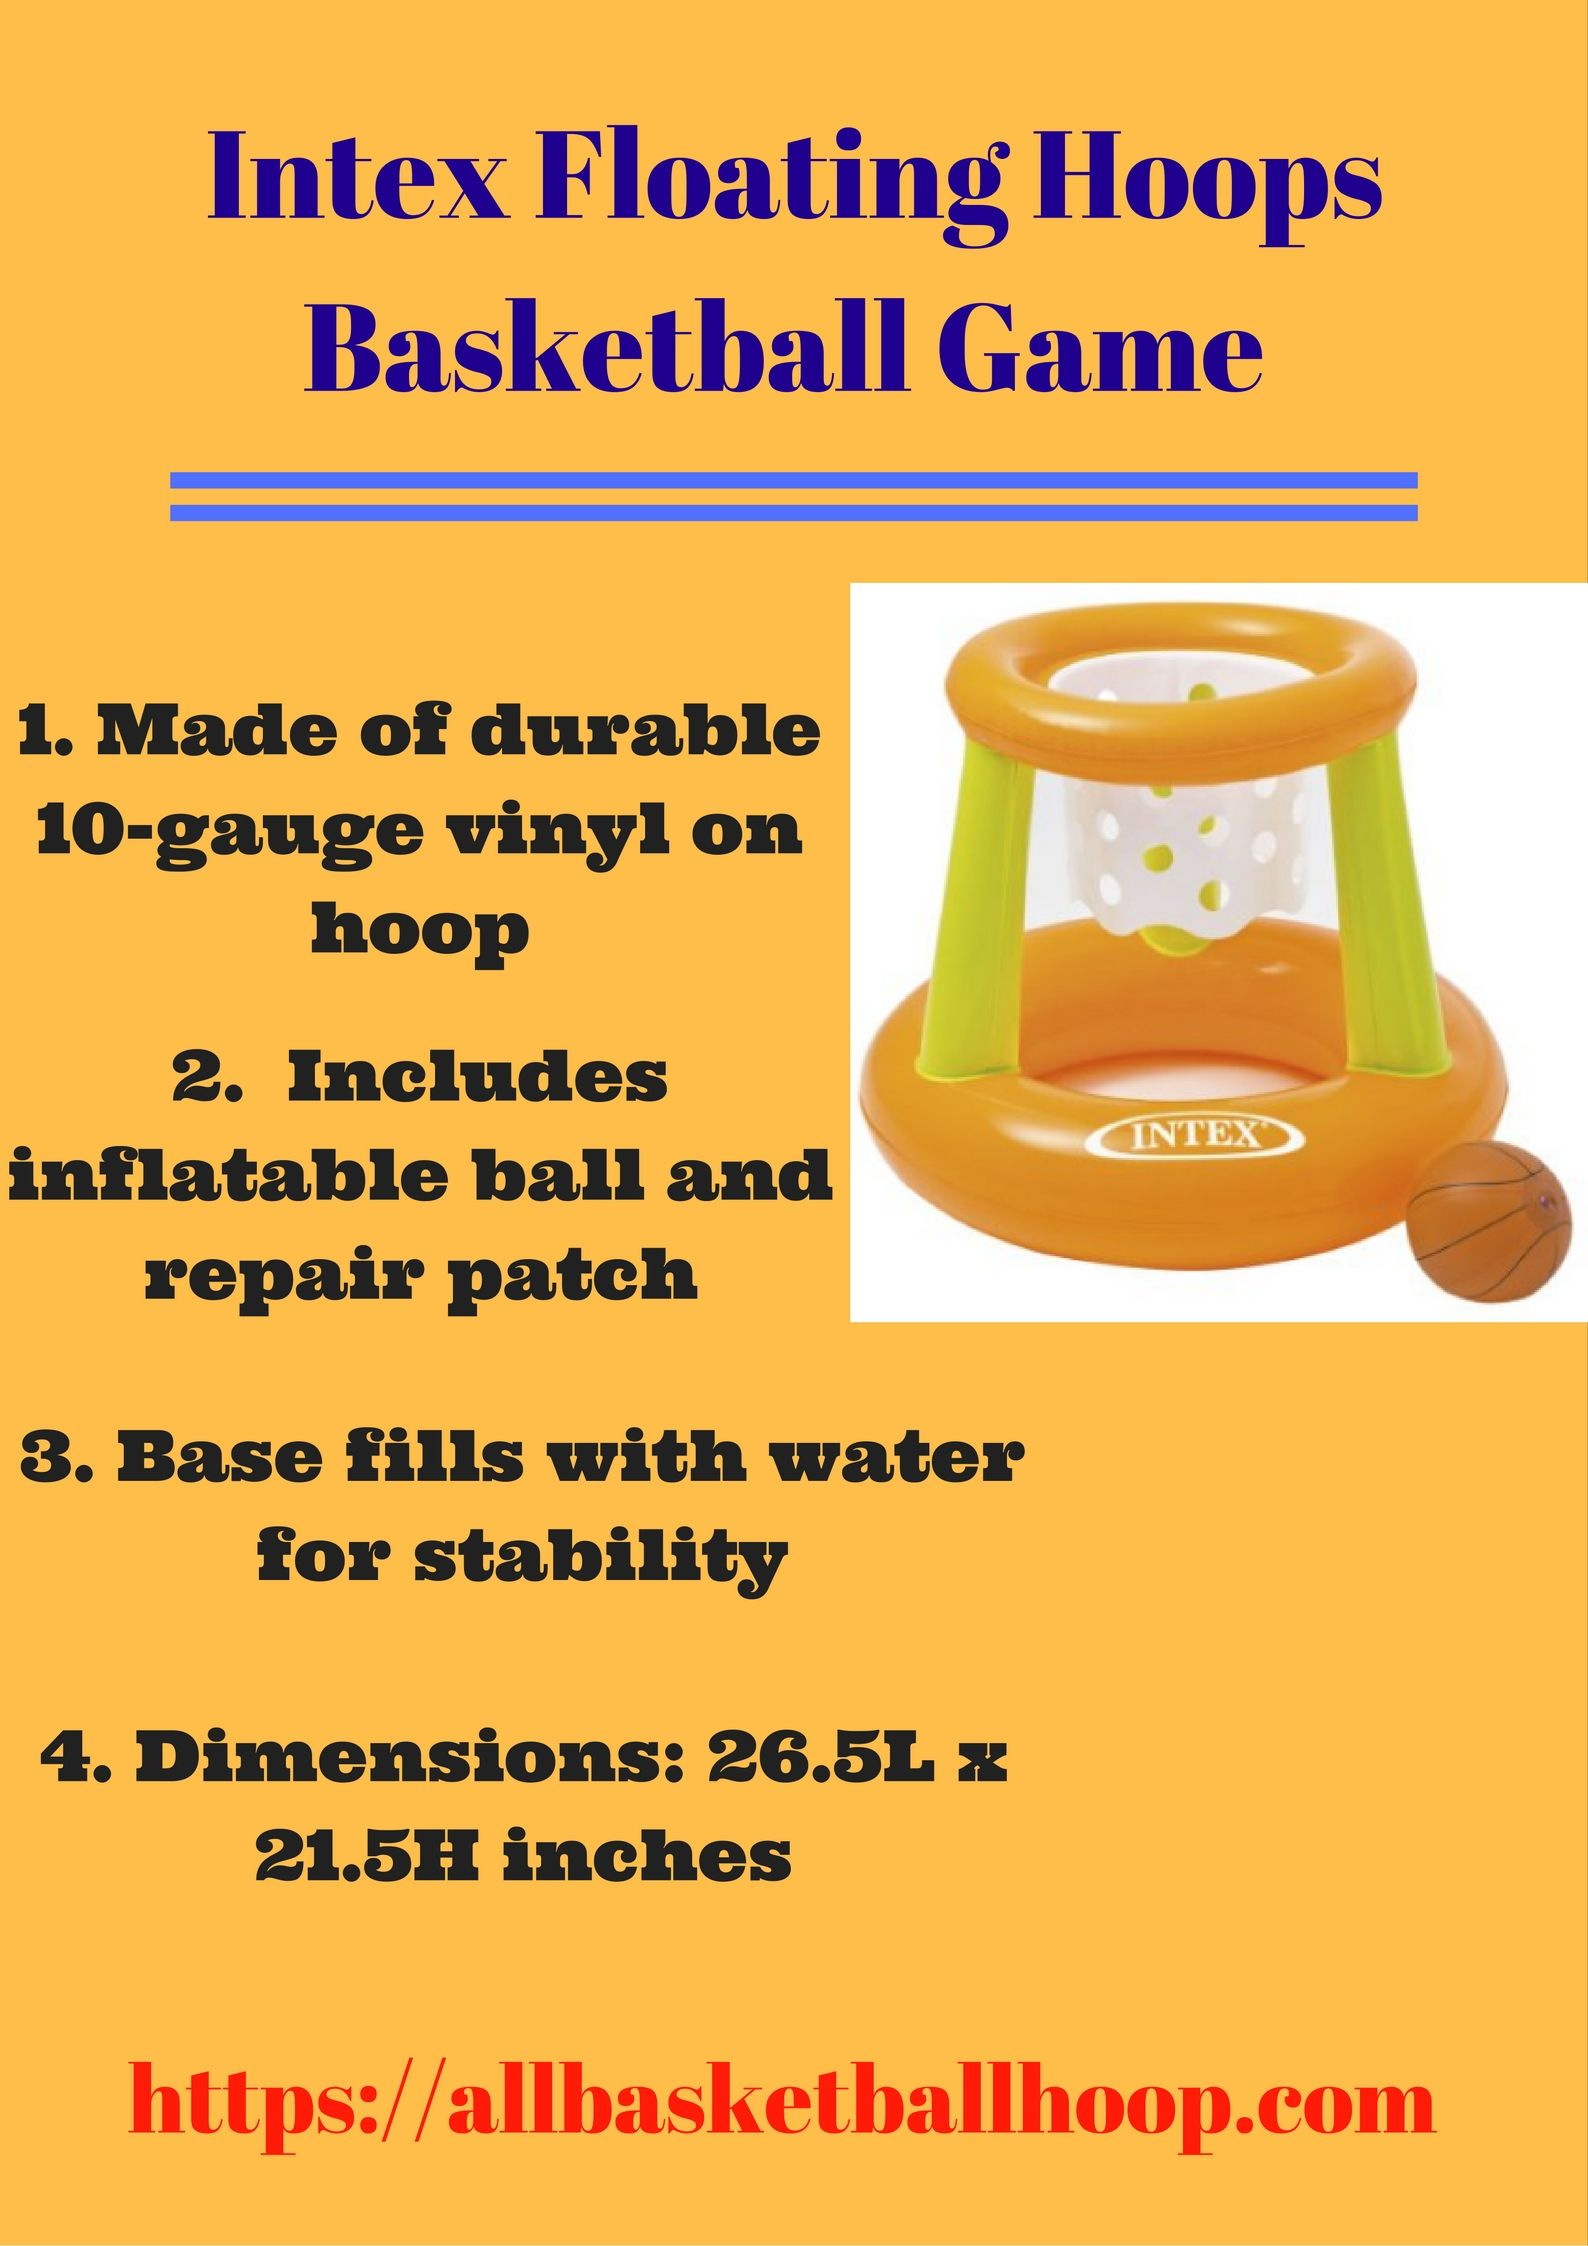 intex floating hoops basketball game is best seller amazon pool